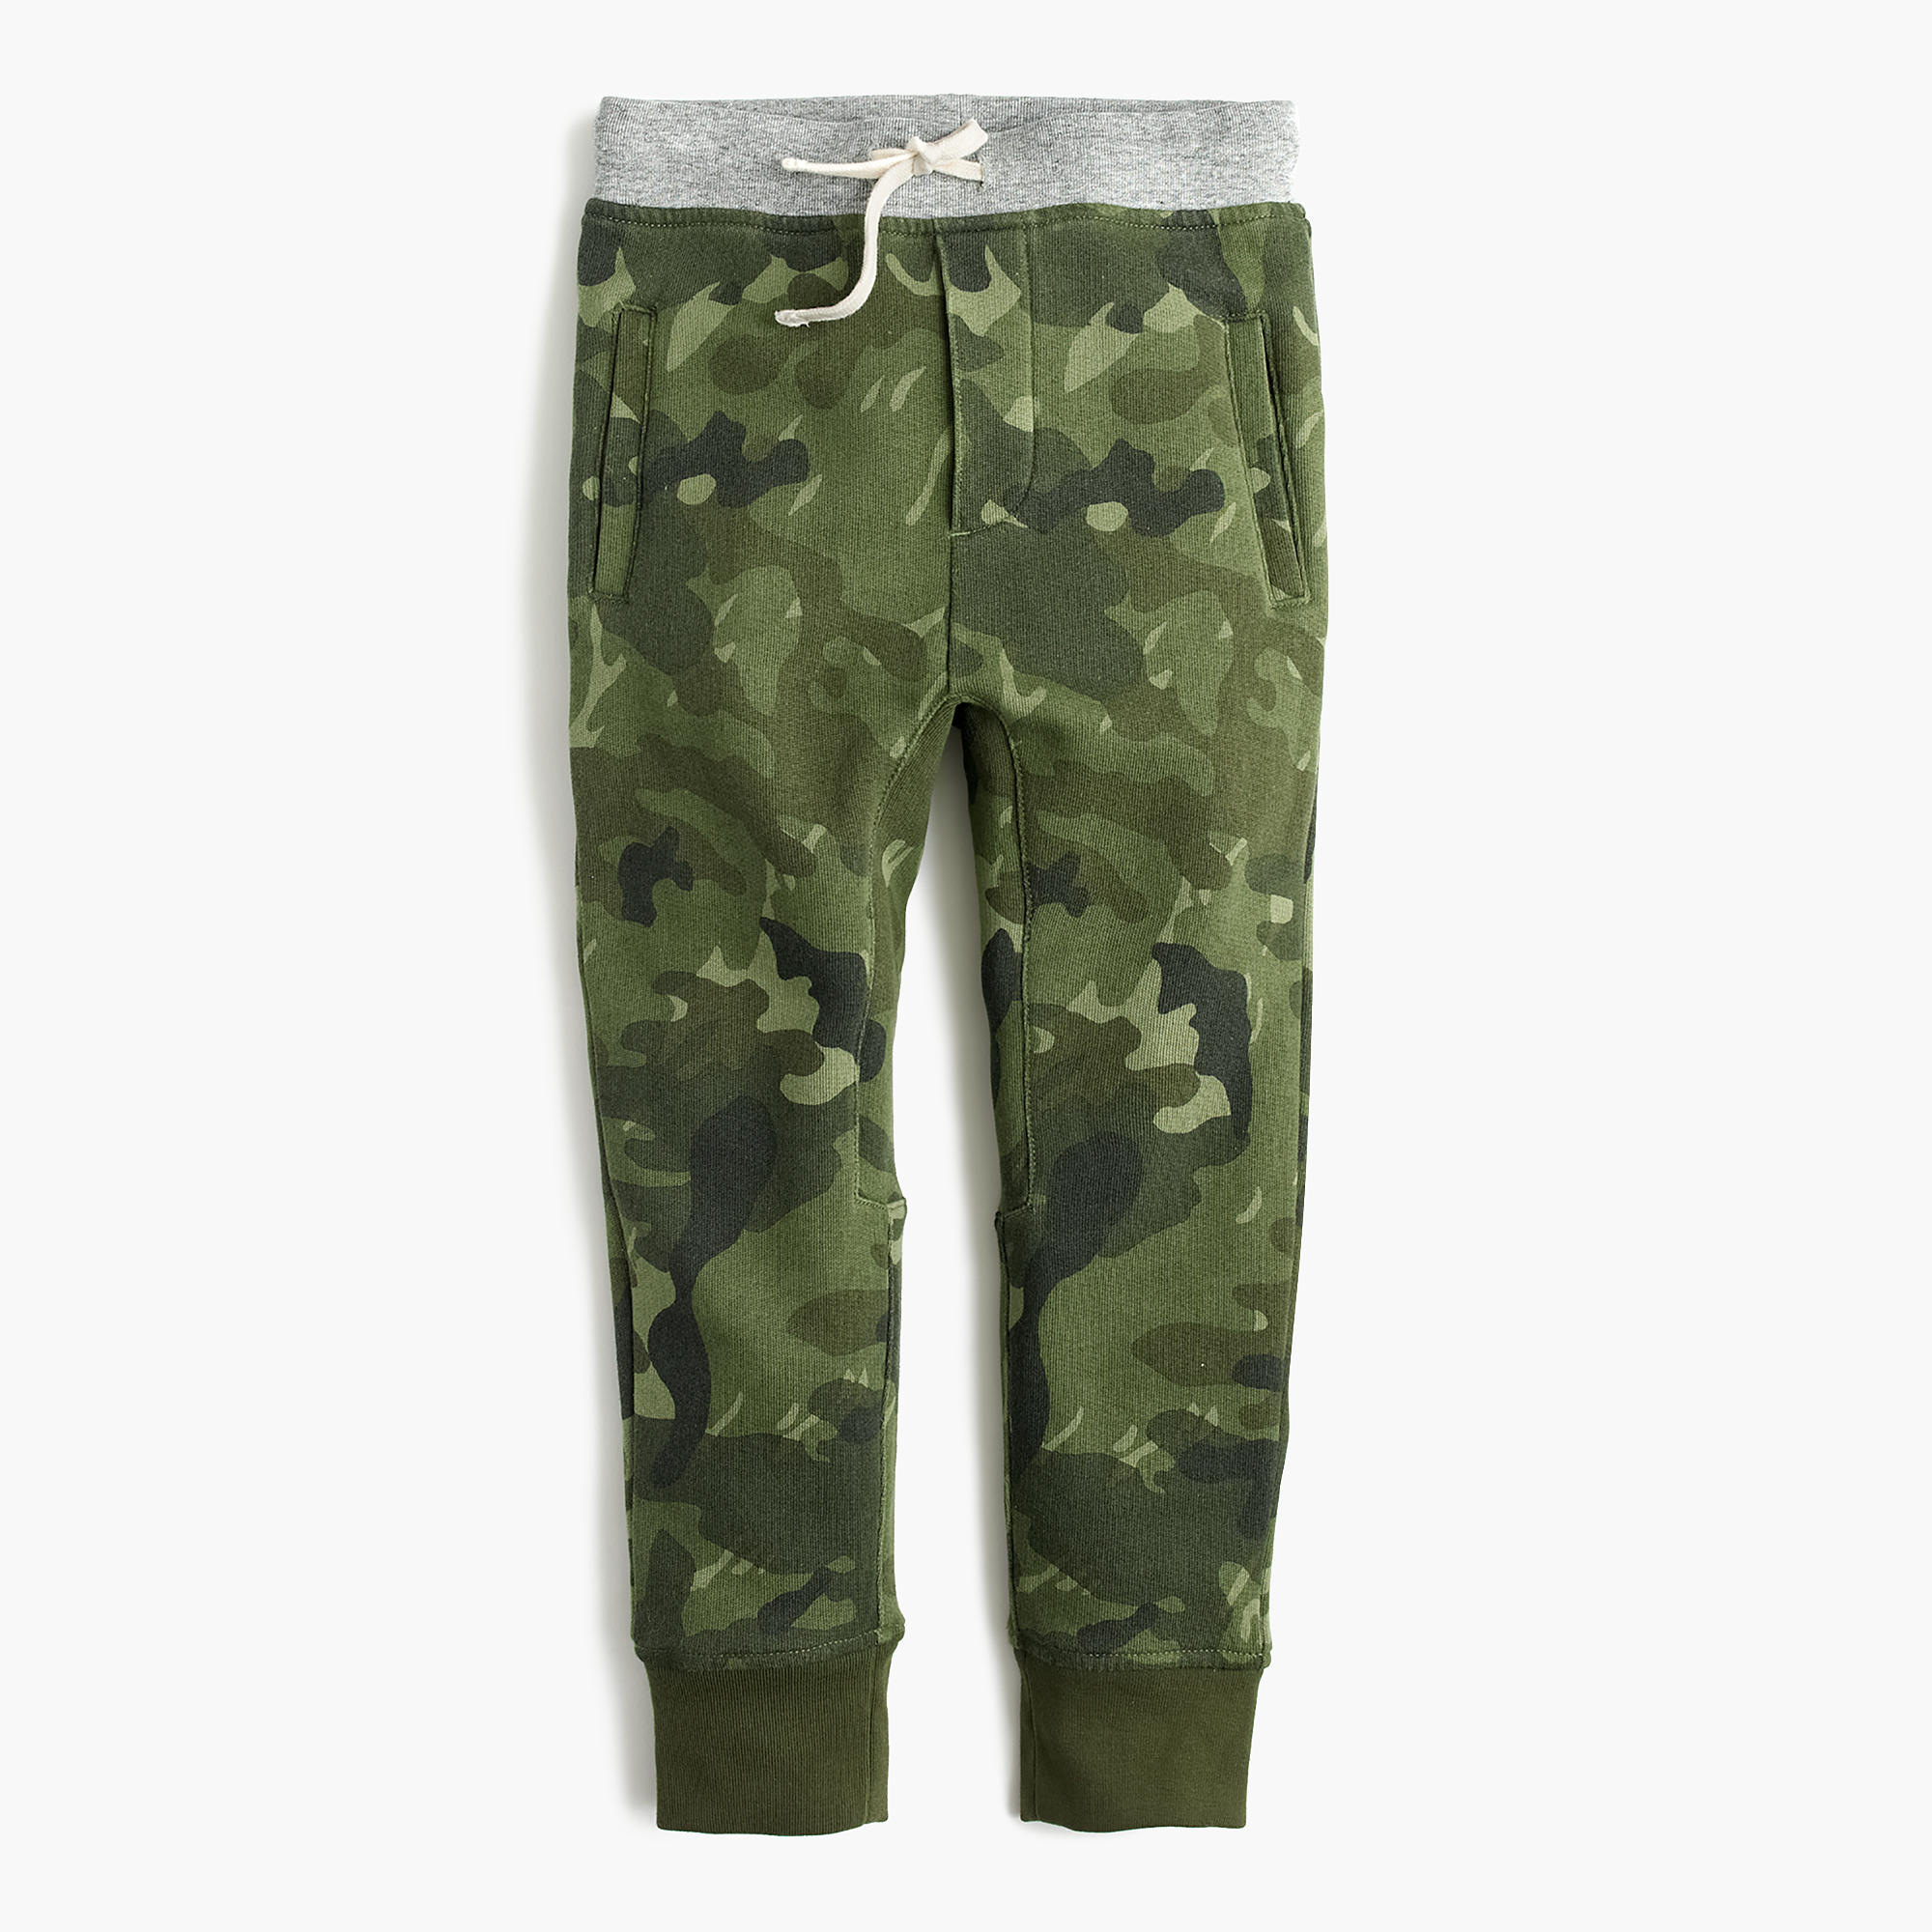 Shop boys' sweatpants and pants at UA. Waterproof athletic pants in baby boys' youth, toddler, infant, and newborn sizes. FREE SHIPPING availabe in US.